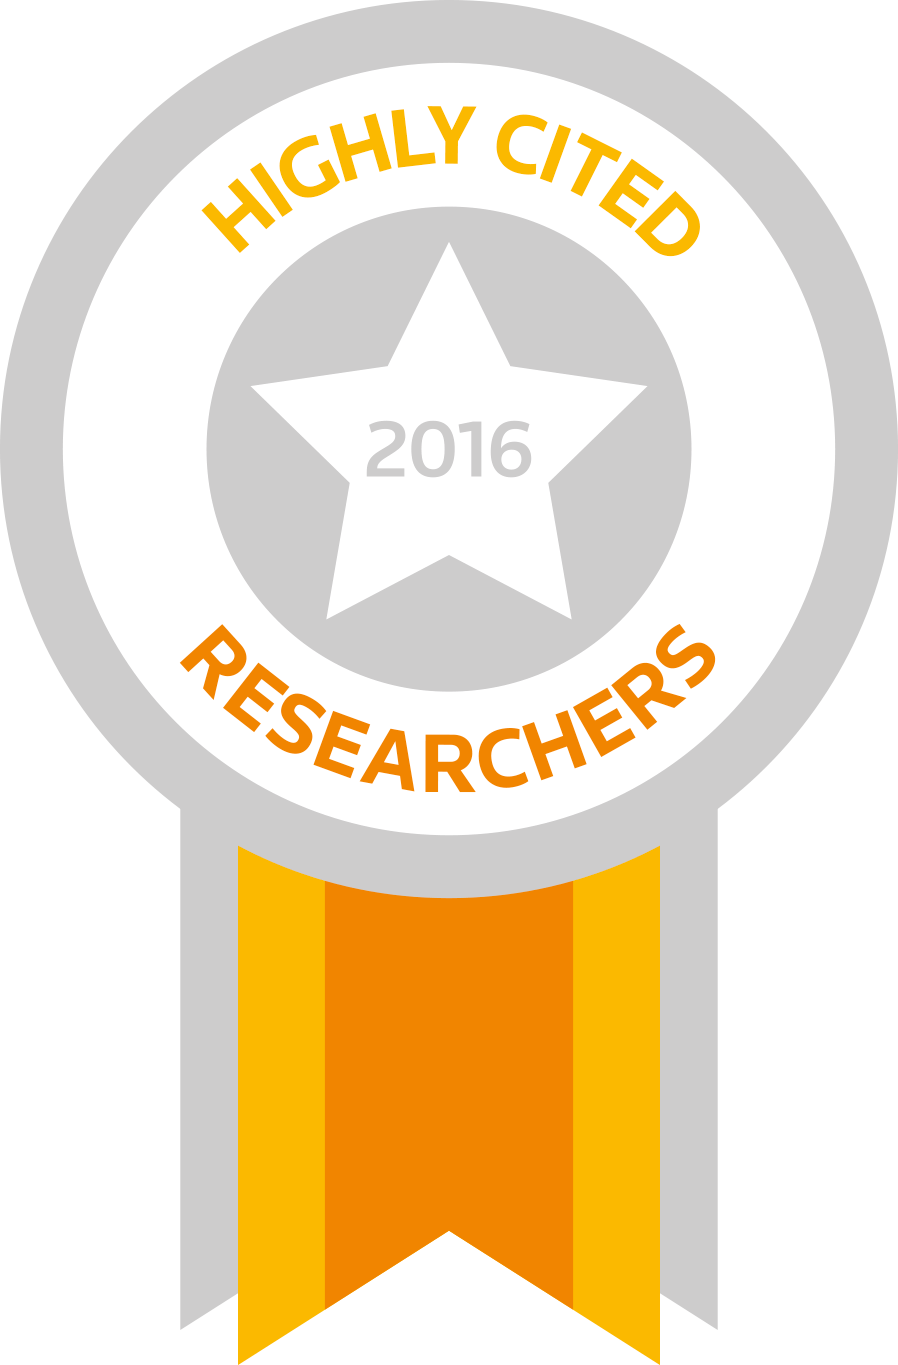 You were selected as a Highly Cited Researcher because your work has been identified as being among the most valuable and significant in the field. Very few researchers earn this distinction – writing the greatest number of reports, officially designated by Essential Science Indicators as Highly Cited Papers. In addition, these reports rank among the top 1% most cited works for their subject field and year of publication, earning them the mark of exceptional impact.